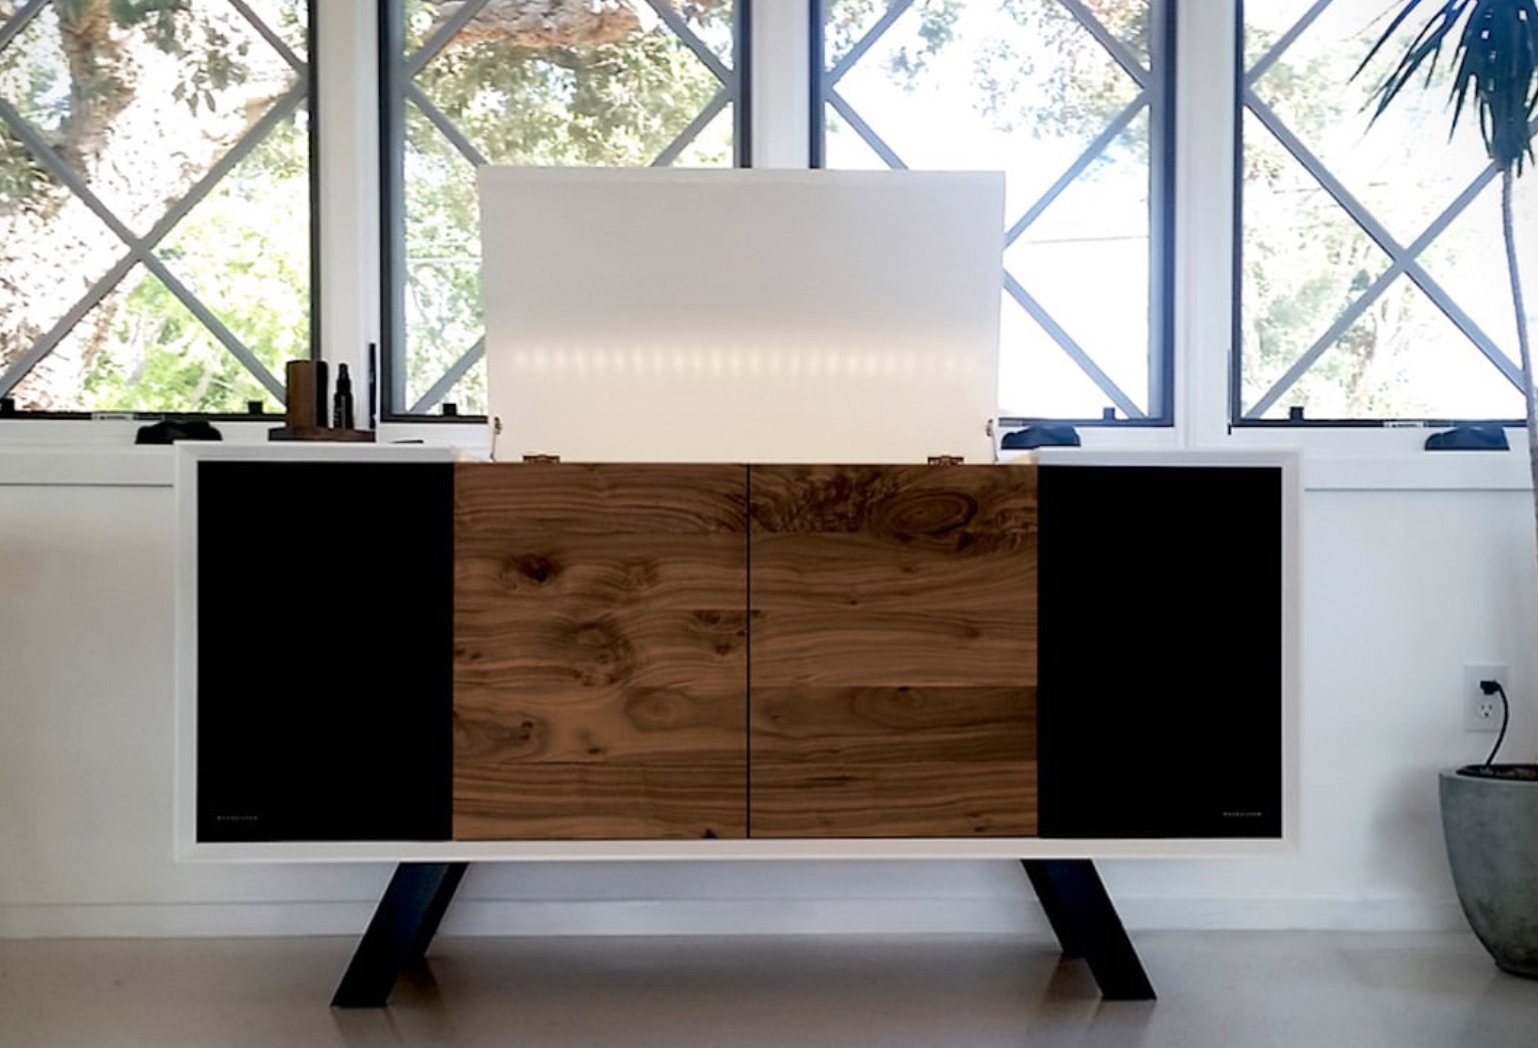 Wrensilva Sonos Edition Record Console : Listen to your vinyl on the turntable or your music and podcasts on the Sonos app. This handcrafted hardwood console has two fully integrated Sonos Play:5 speakers.